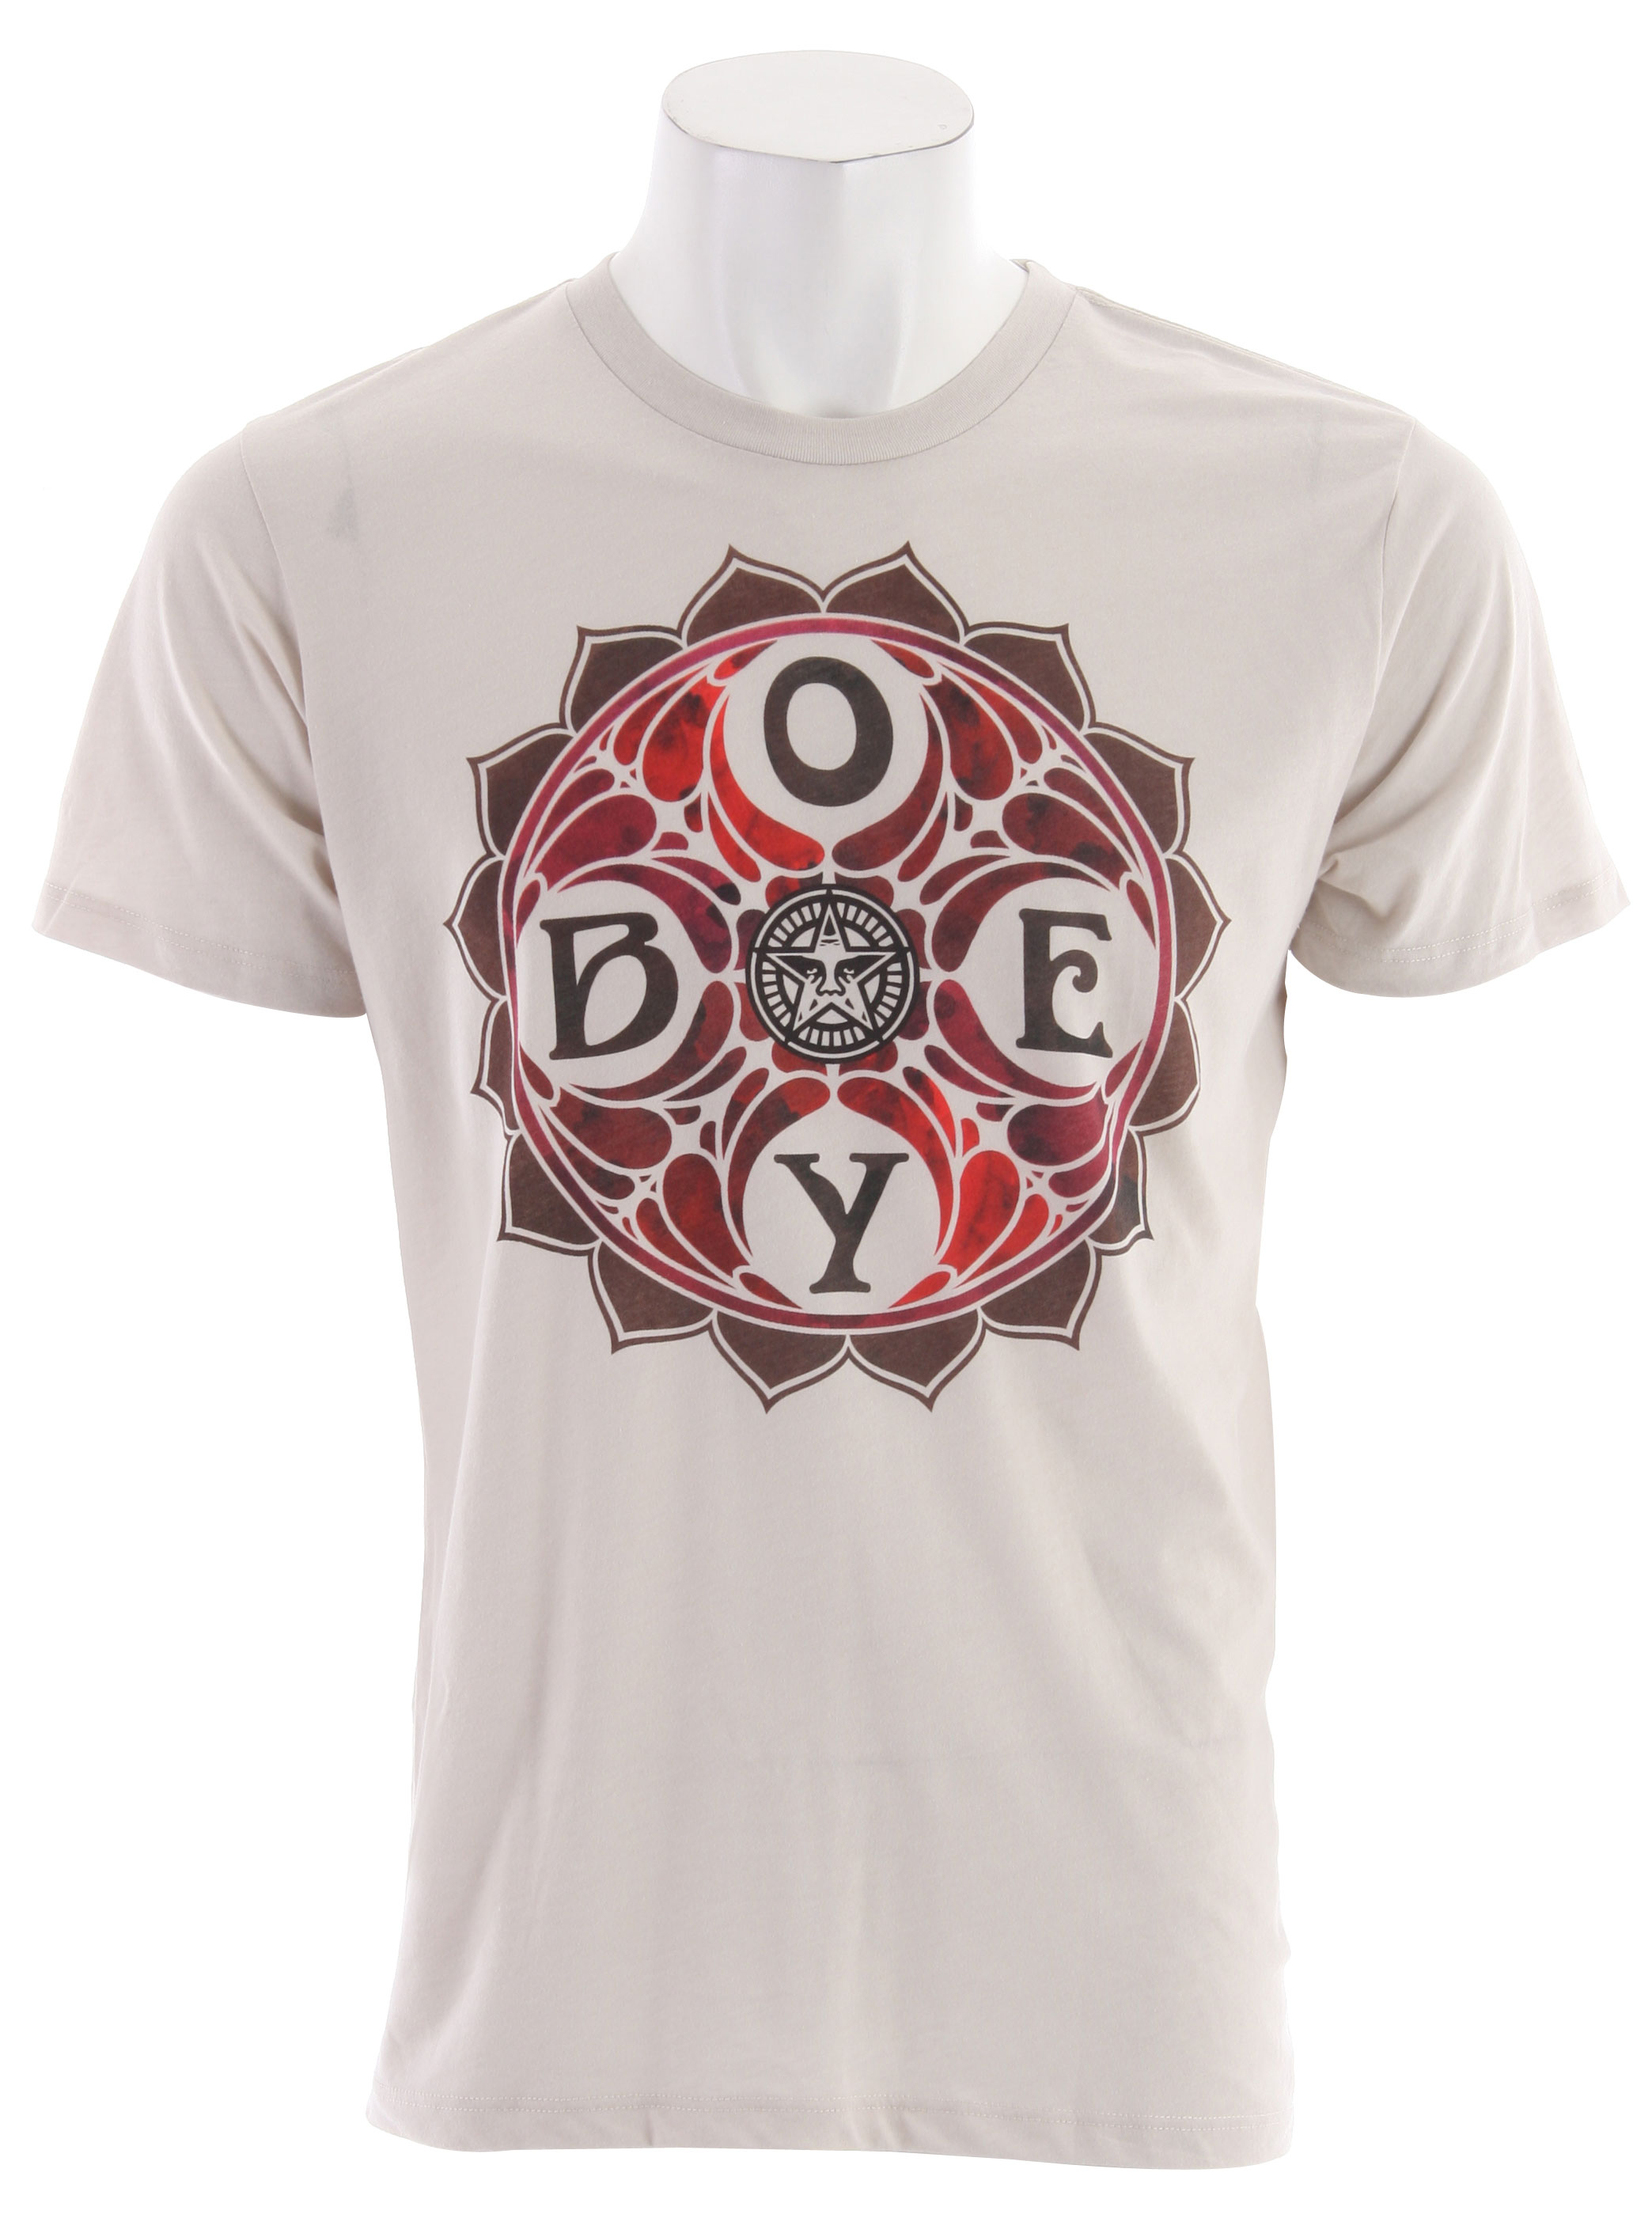 Key Features of The Obey Dye Star T-Shirt: Slim Fit Crew Neck Short Sleeve Obey lightweight, Ribbed crew neck 50% Cotton/50% Poly - $27.95